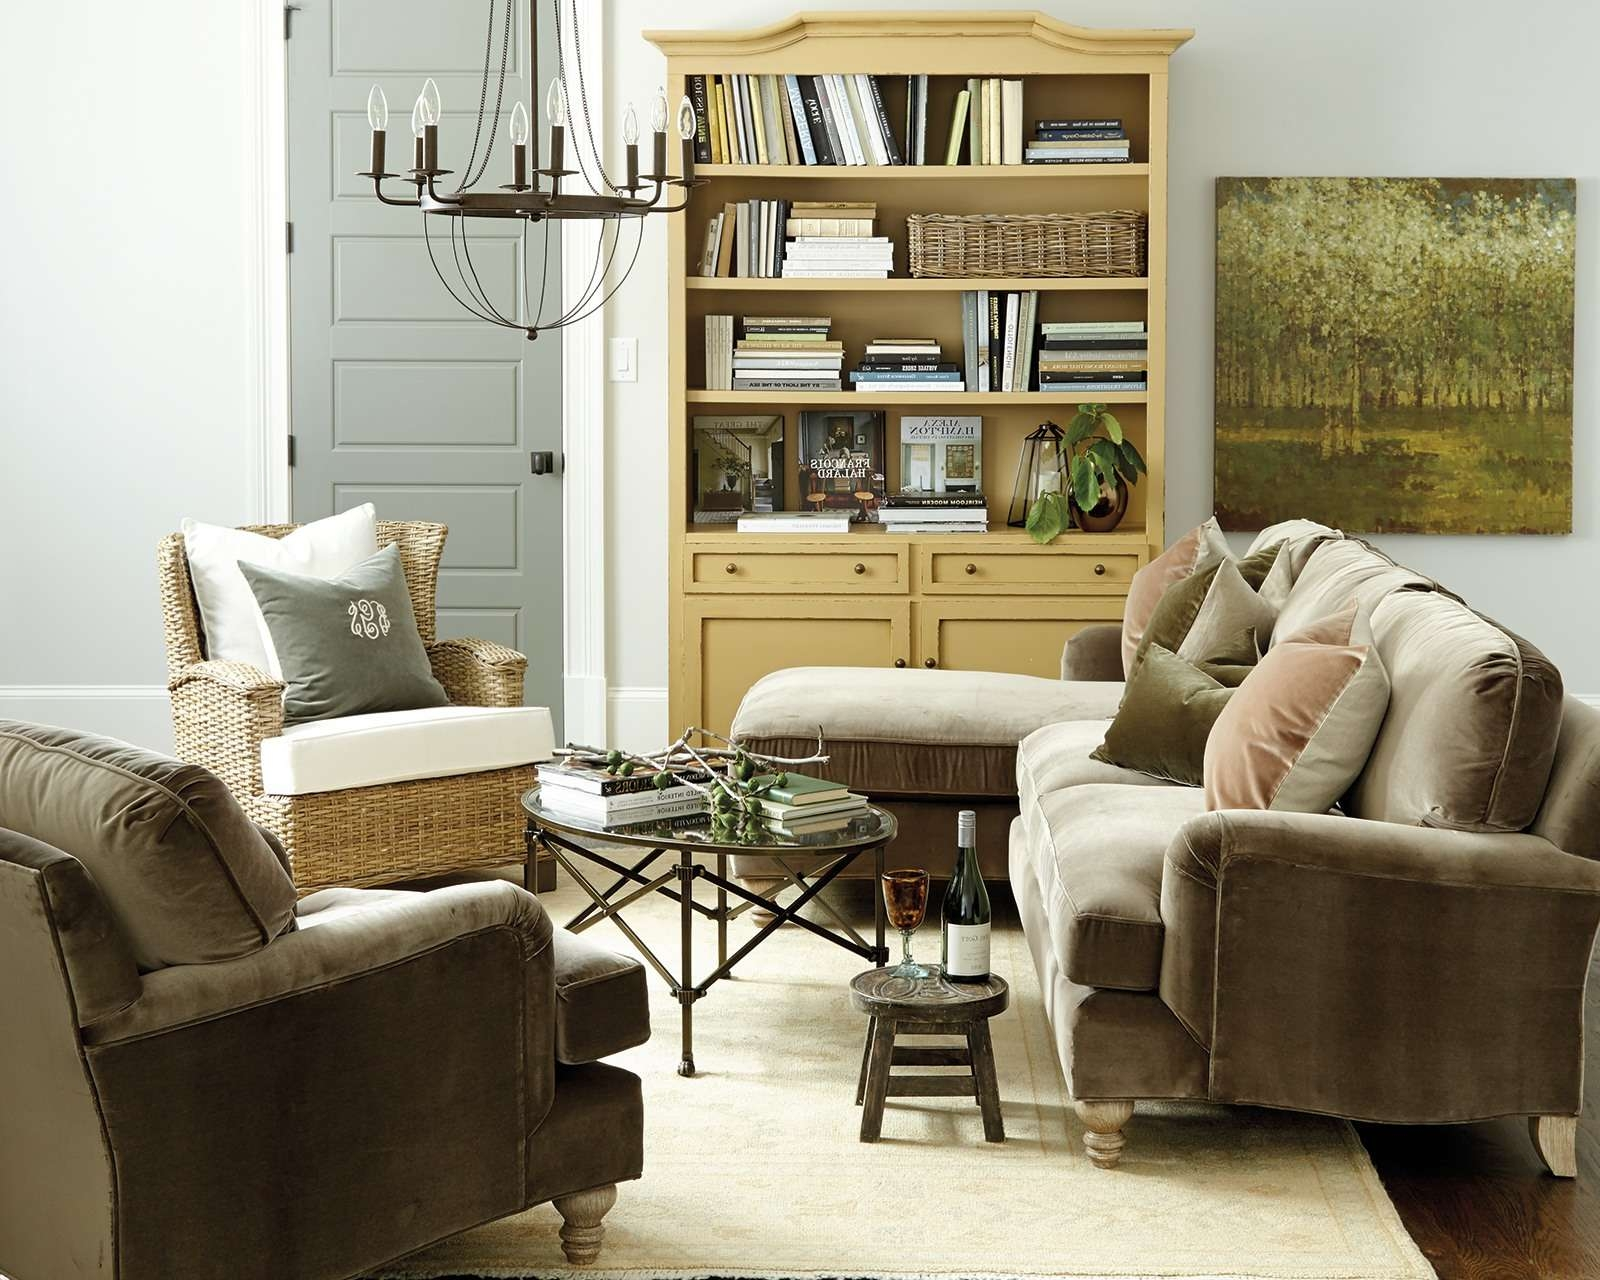 Best And Newest Coffee Table For Sectional Sofa Pertaining To How To Match A Coffee Table To Your Sectional – How To Decorate (View 4 of 20)